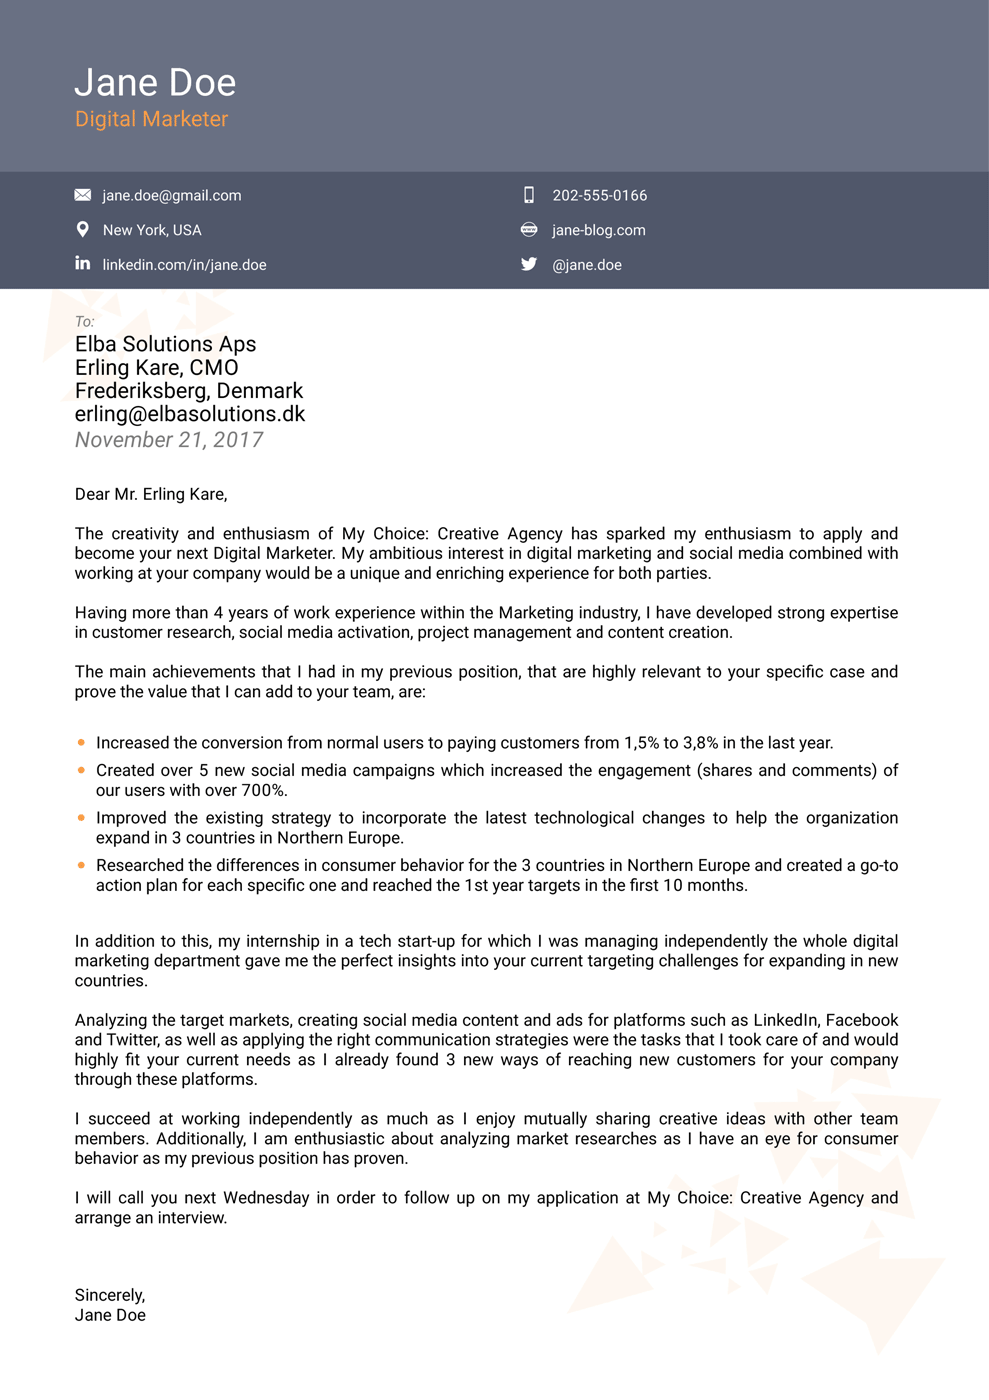 simple cover letter for resume doc Sample cover letter - download a free resume cover letter template for microsoft word and learn how to write a cover letter.